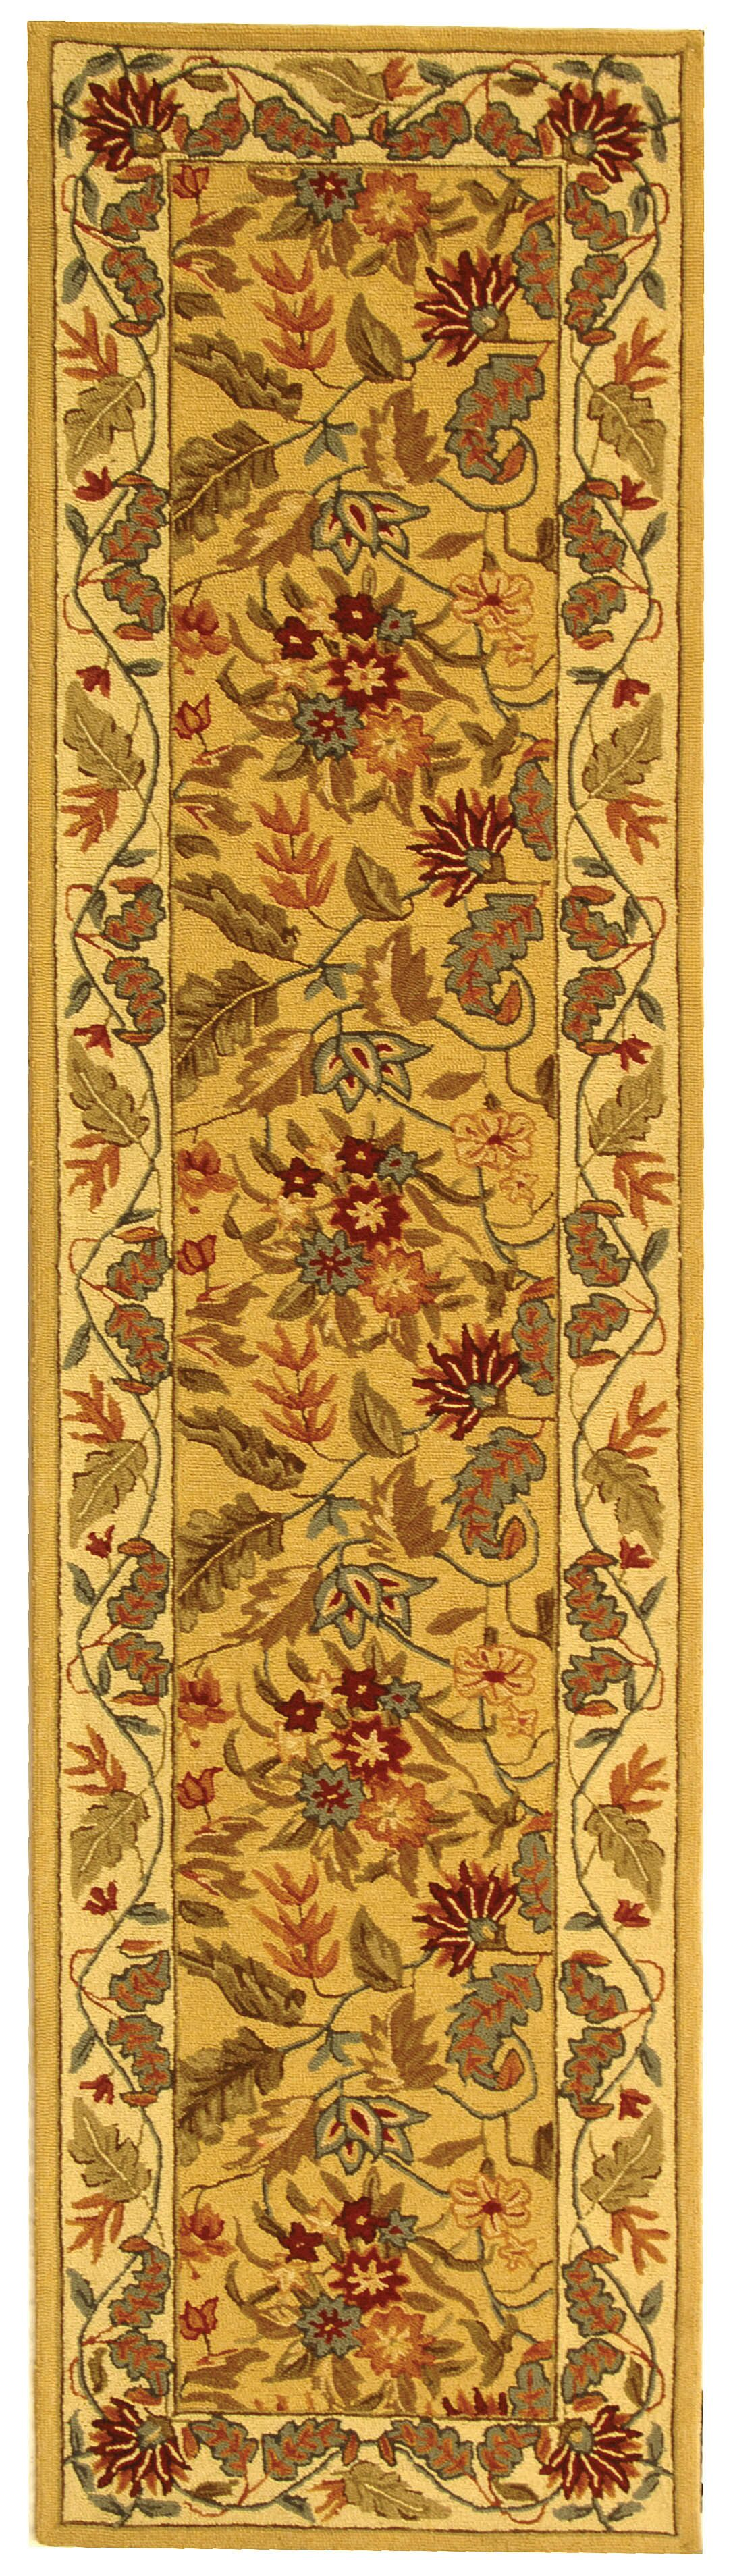 Helena Missy Floral Hand Hooked Wool Ivory/Red Area Rug Rug Size: Runner 2'6